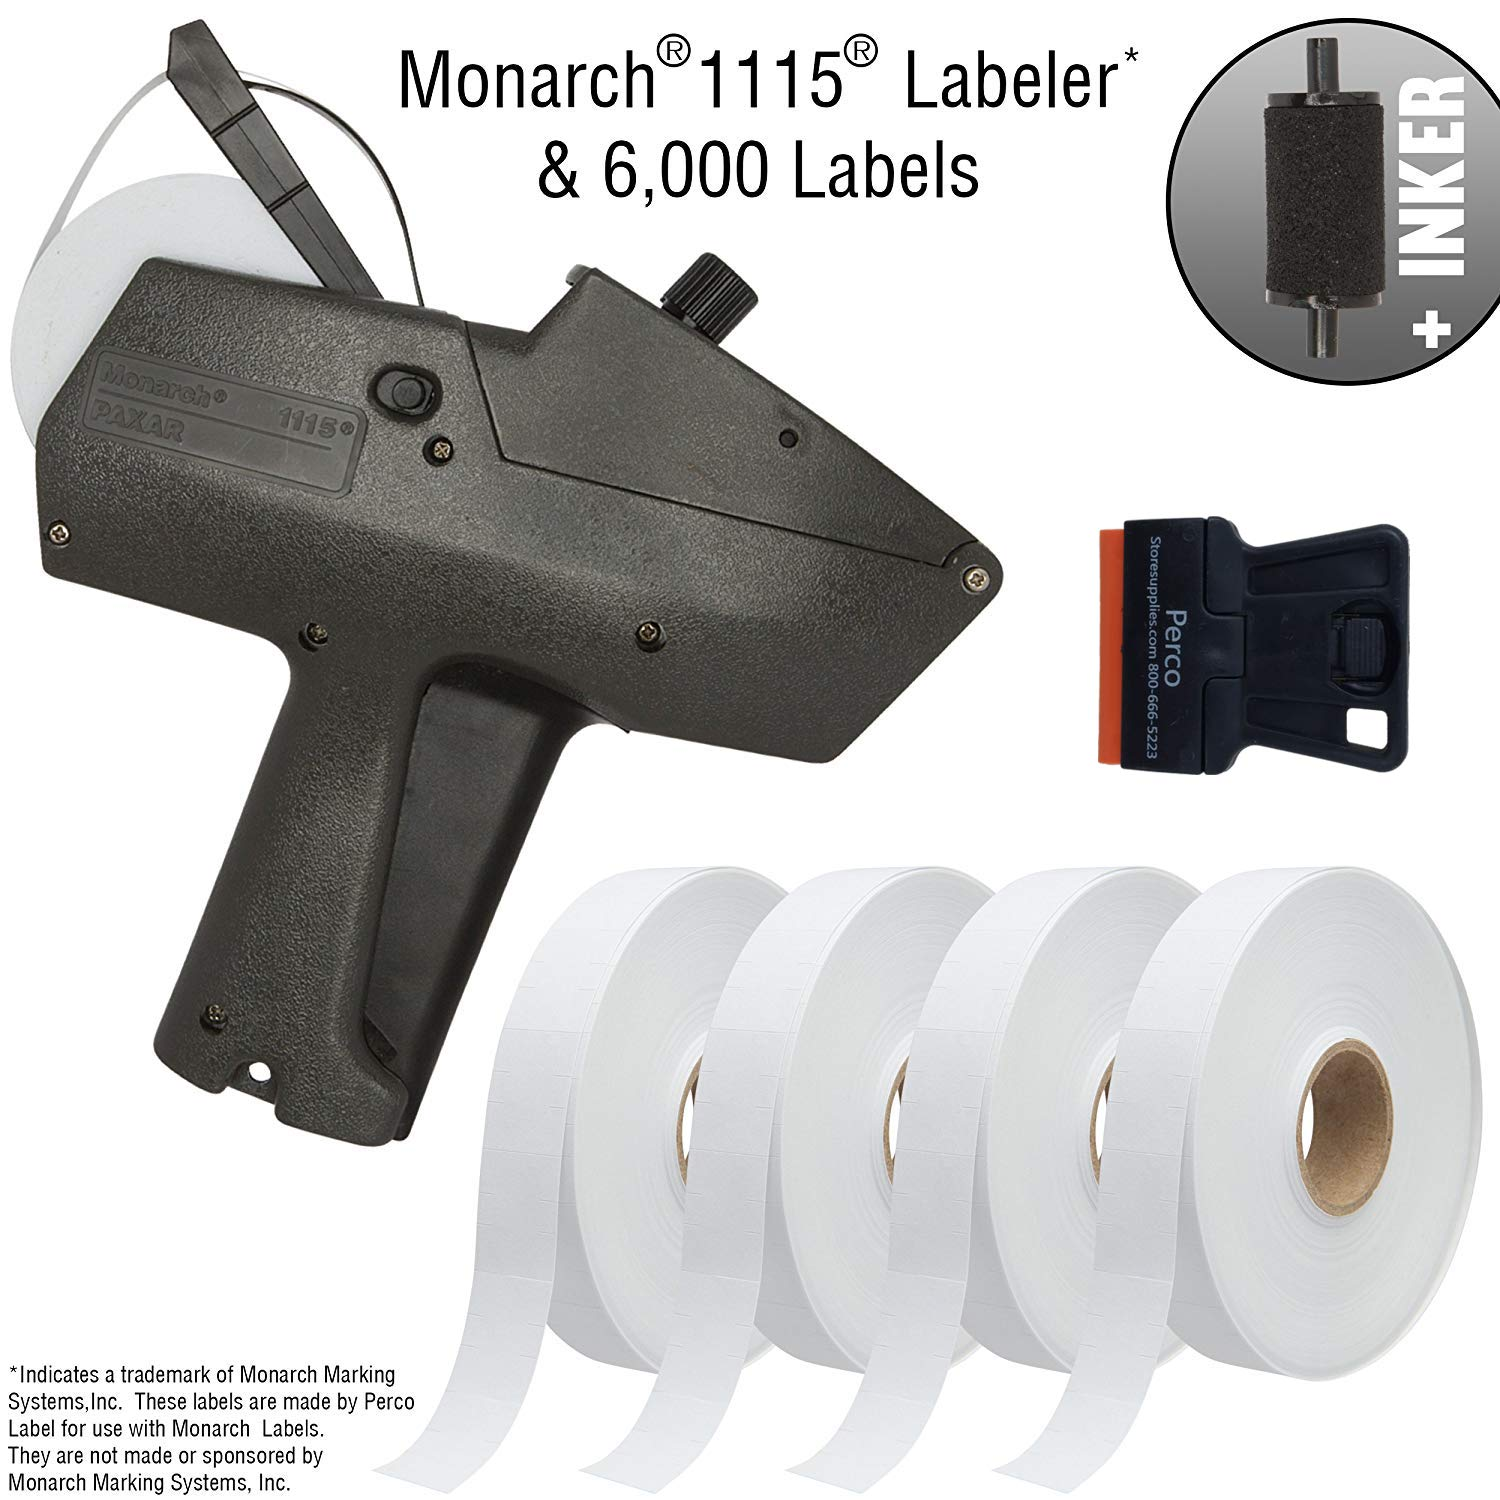 Monarch 1115 Price Gun with Labels Starter Kit: Includes Price Gun, 6,000 White Pricing Labels, Inker and Label Scraper by Perco (Image #1)